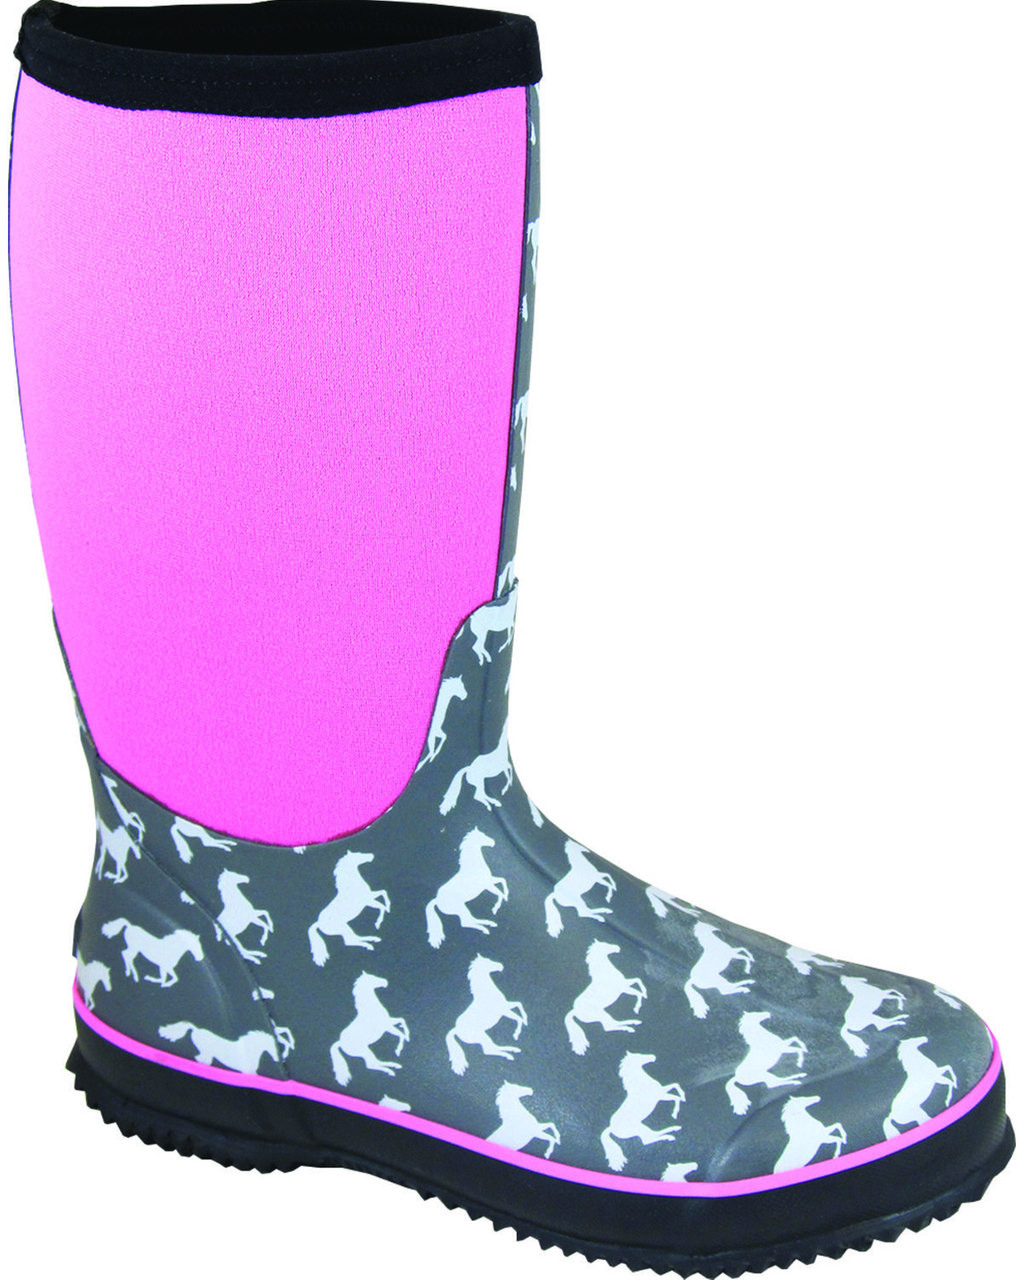 1024x1280 Cowgirl Rain Boots Amp Rubber Boots